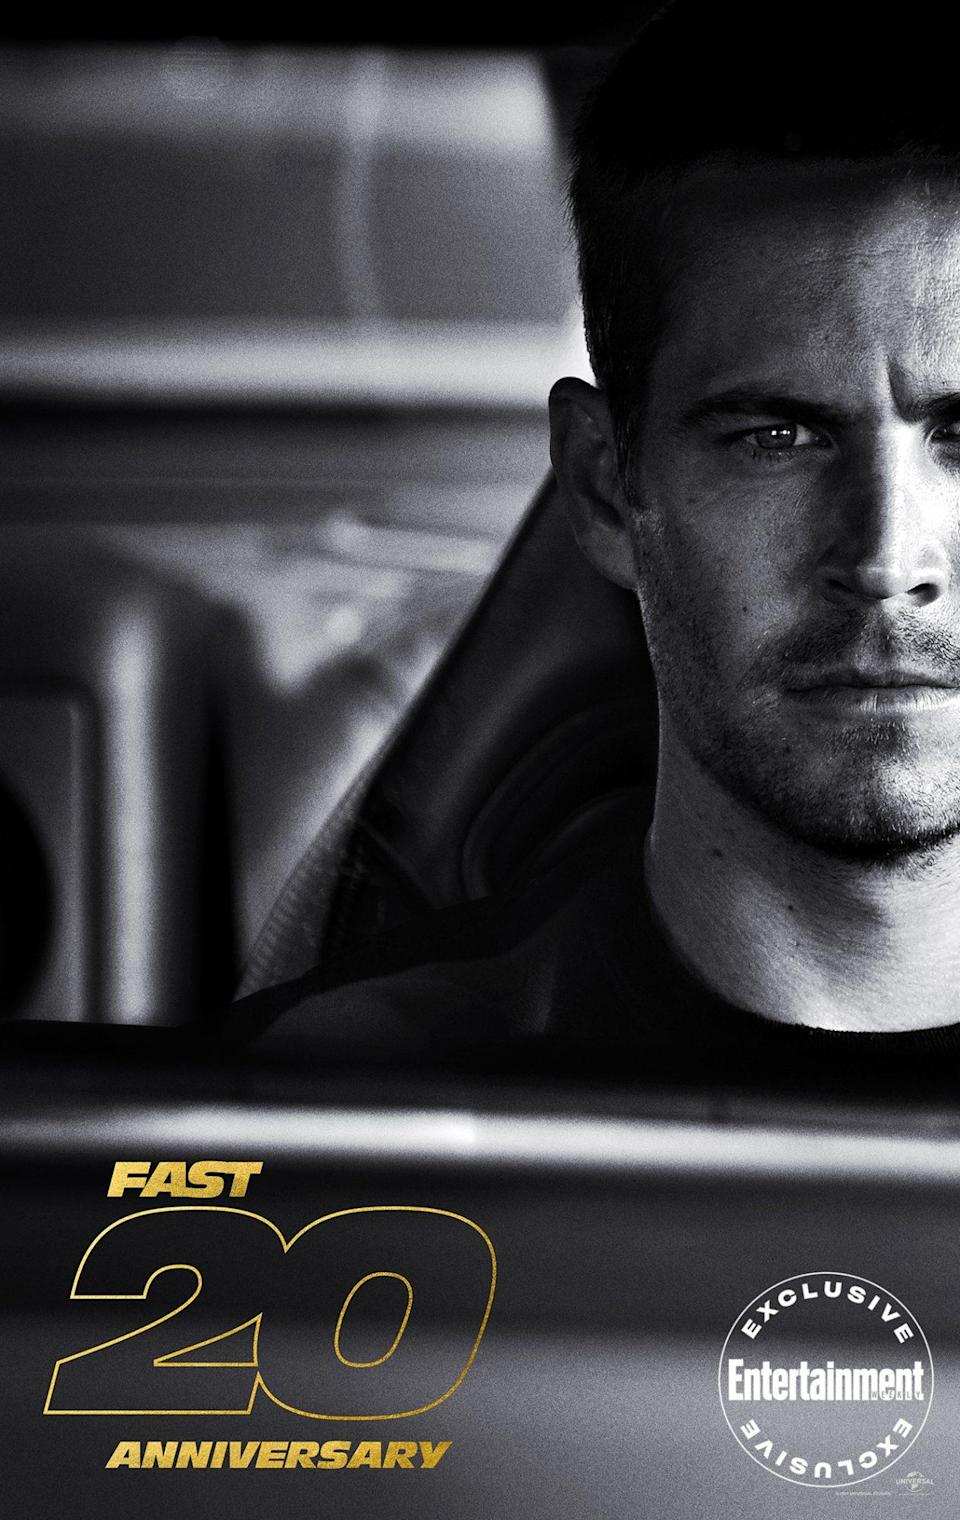 """<p><a href=""""https://ew.com/tag/paul-walker/"""" rel=""""nofollow noopener"""" target=""""_blank"""" data-ylk=""""slk:Paul Walker"""" class=""""link rapid-noclick-resp"""">Paul Walker</a> was <em>Fast</em>'s original hero, starring in <em>The Fast and the Furious</em>, <em>2 Fast 2 Furious</em>, <em>Fast & Furious</em>, <em>Fast Five</em>, <em>Fast & Furious 6</em>, and <em>Furious 7</em>, before the late actor passed away during the filming of the seventh installment. """"He had this ability to see,"""" said Diesel on <a href=""""https://ew.com/ew-binge-podcast/fast-saga-vin-diesel-the-fast-and-the-furious/"""" rel=""""nofollow noopener"""" target=""""_blank"""" data-ylk=""""slk:EW's BINGE: The Fast Saga"""" class=""""link rapid-noclick-resp""""><em>EW's BINGE: The Fast Saga</em></a>. """"Every time we'd come out of a premiere, it would just be me and him. Everybody would always give us our moment, and he'd always say, 'Vin, the best one's still in the can.' I'd be like, 'You didn't hear them, Paul?! They're going crazy! What do you mean the best one's still in the can?!'""""</p>"""